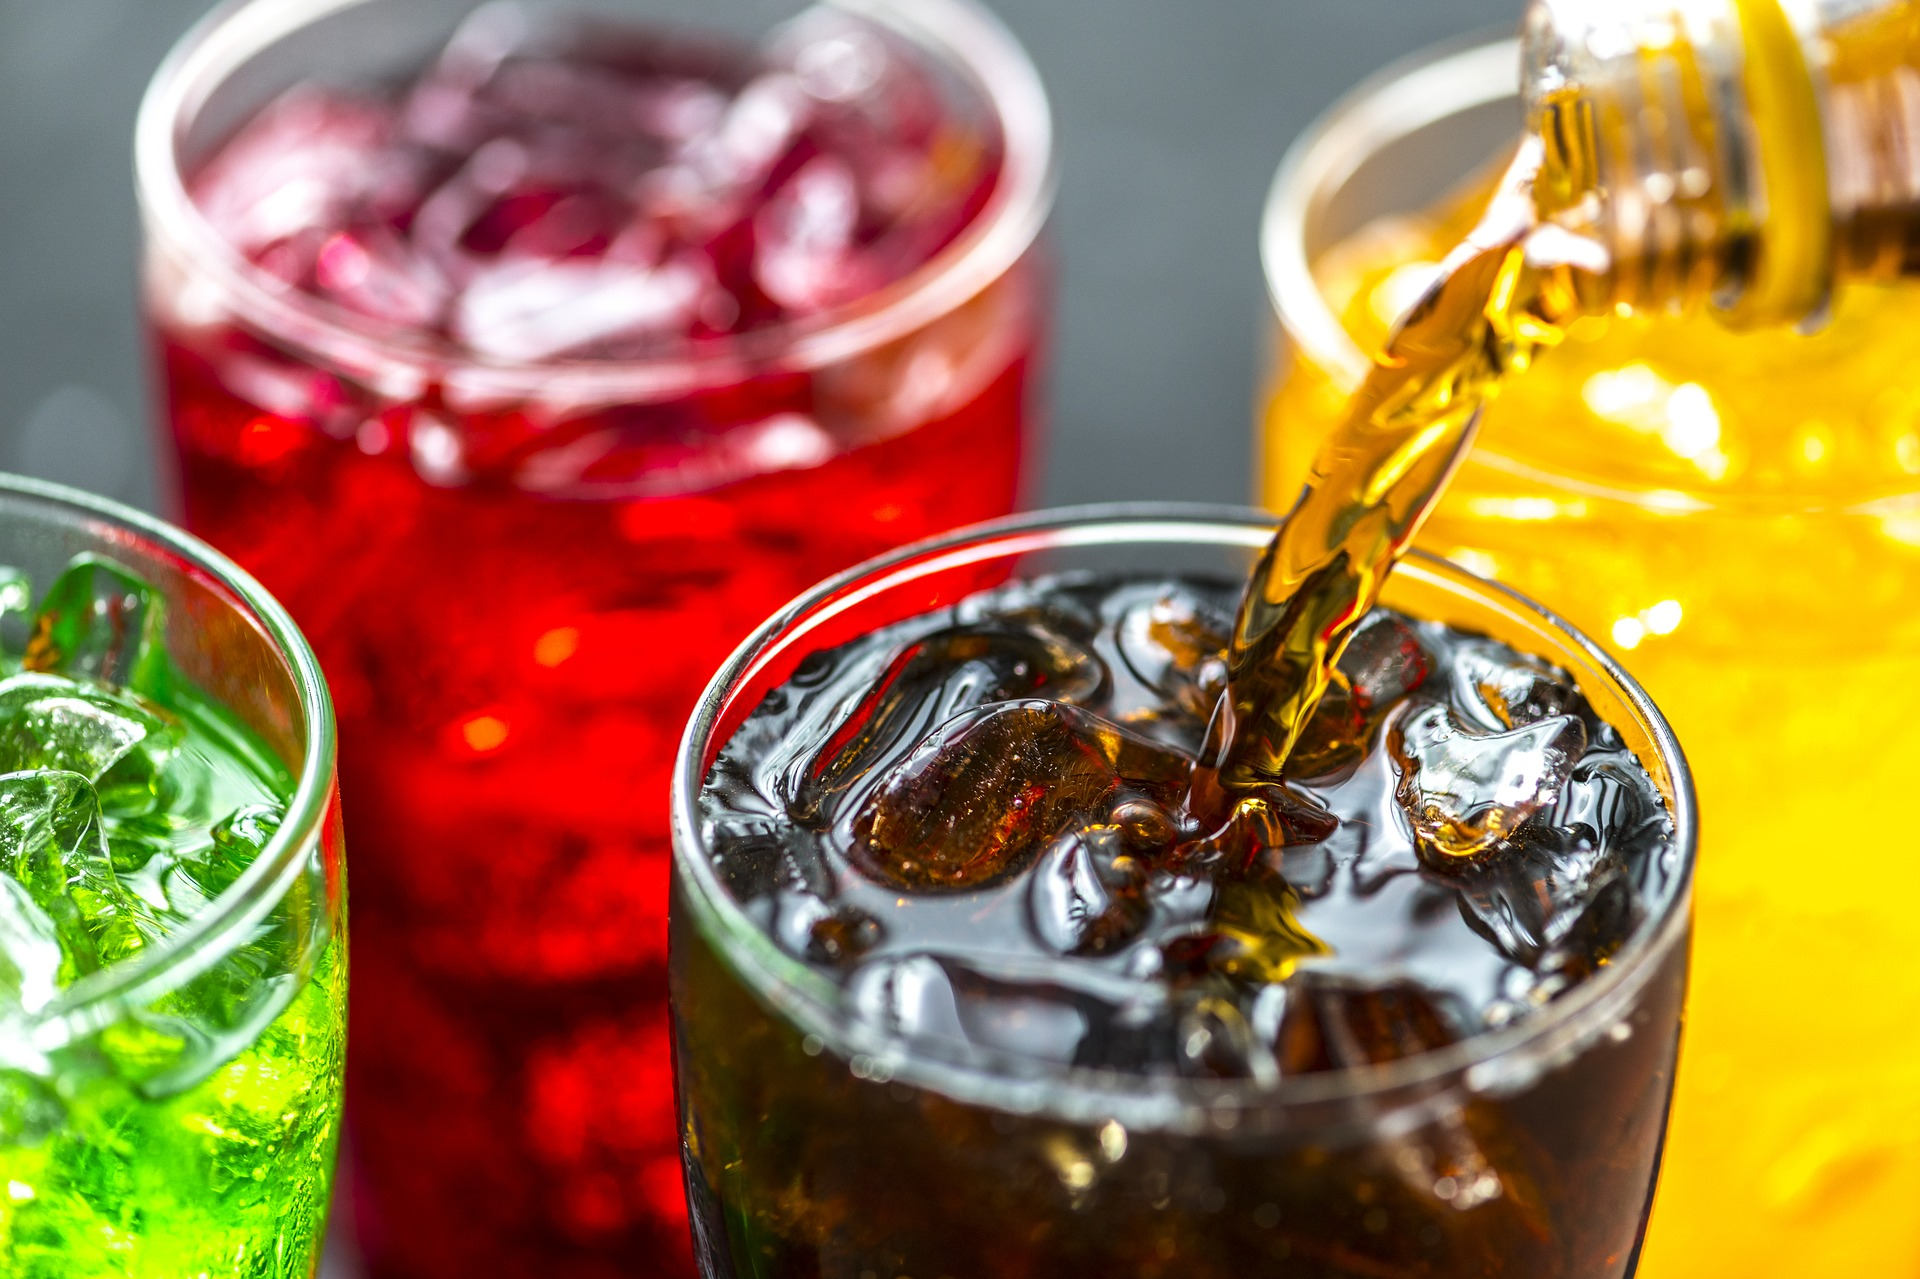 Quitting carbonated drinks processed foods